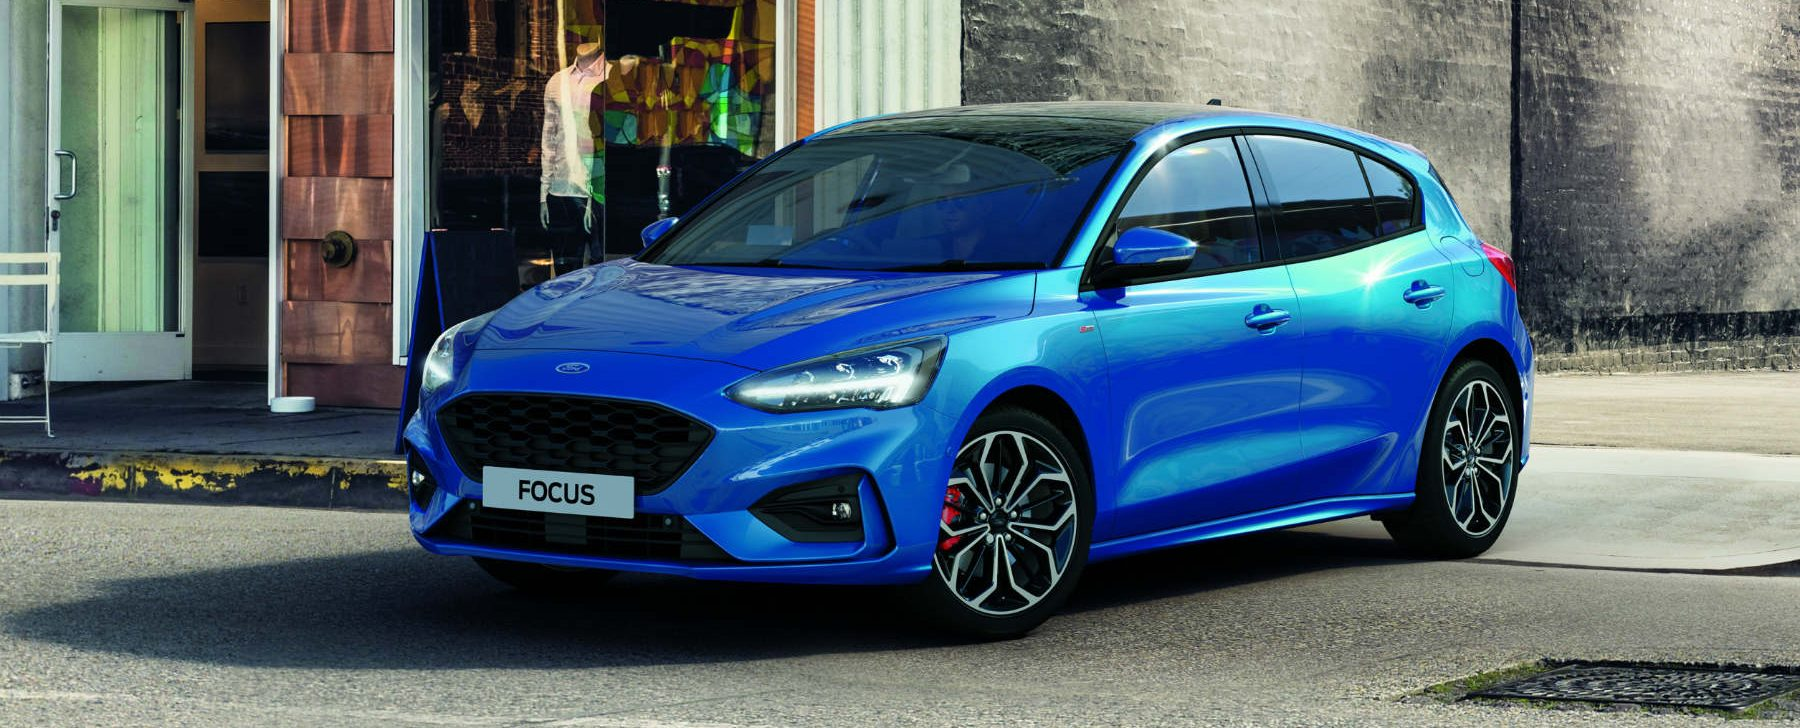 Ford Focus ECO